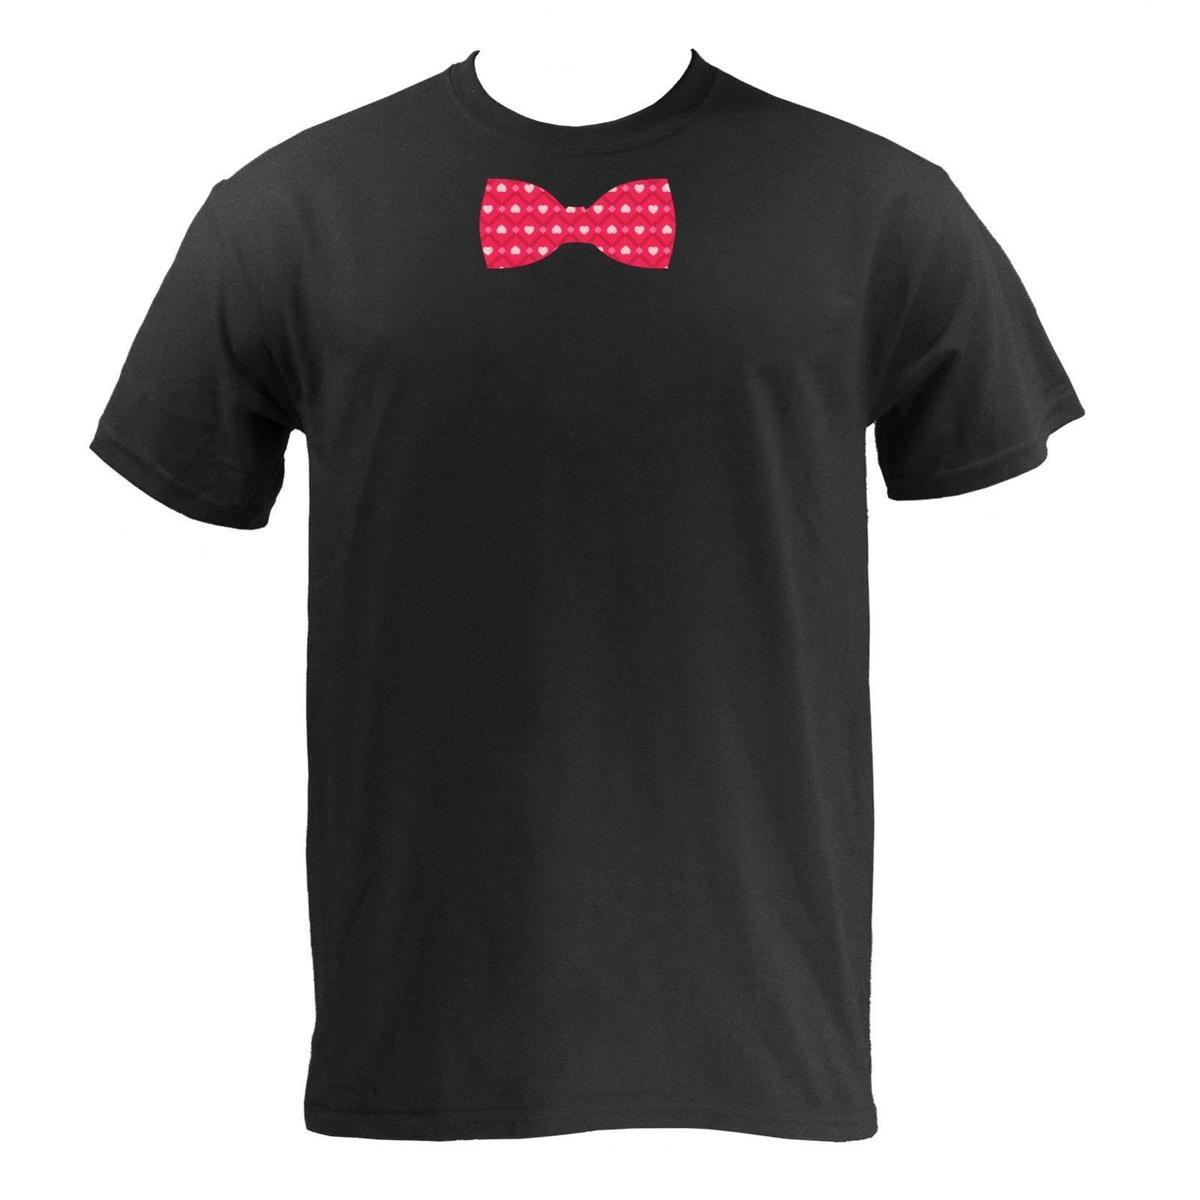 Valentine's Day Bow Tie - Black Basic Cotton Valentines Love Tie T-Shirt